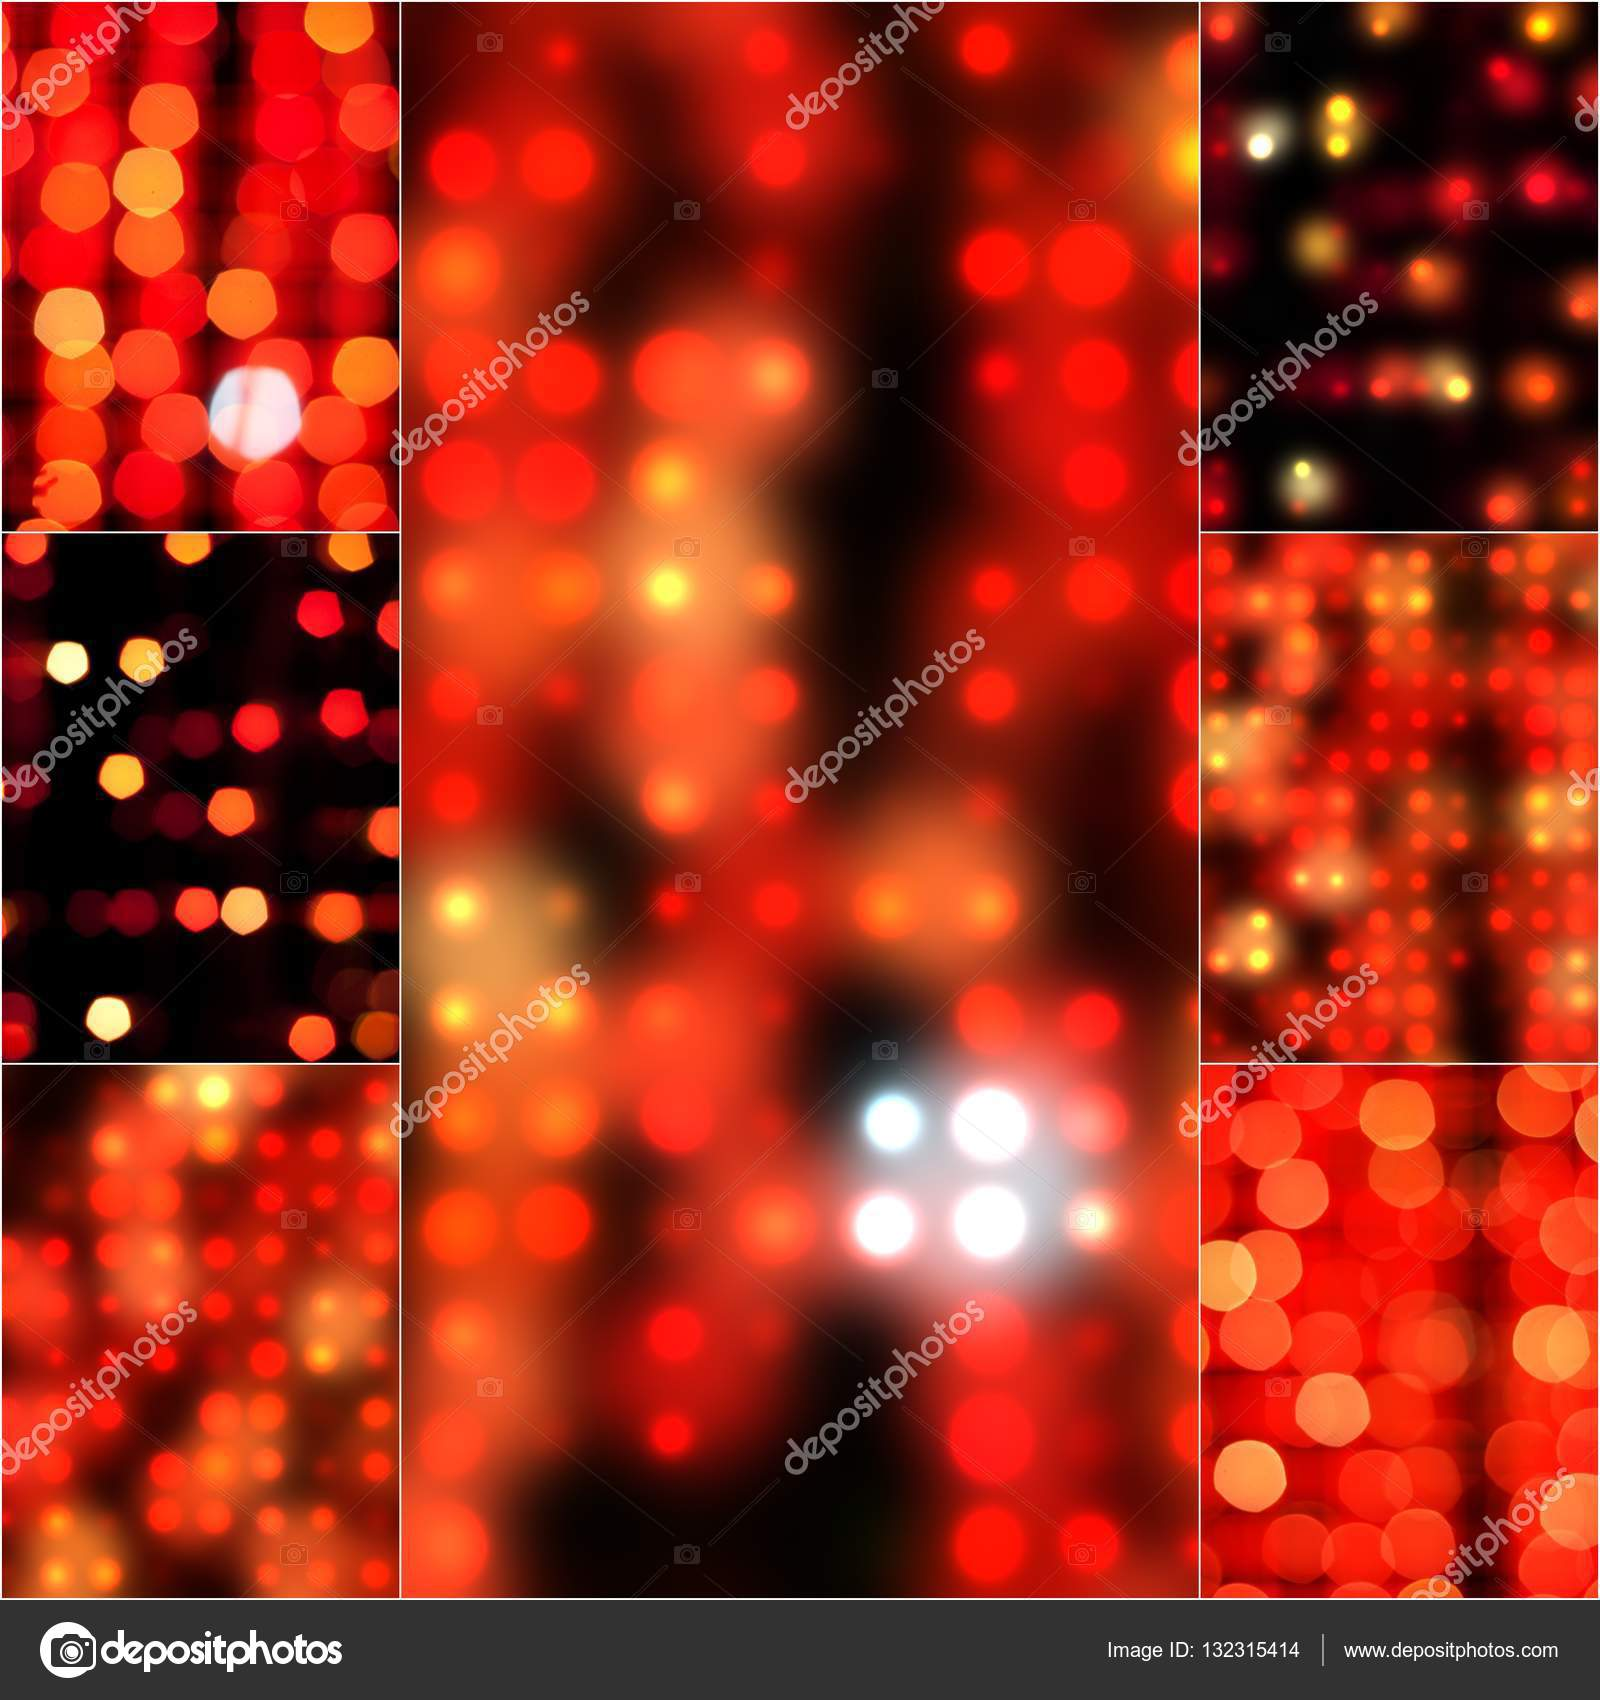 Blur Abstract Background Bokeh Effect In Red Color Blurred Light Vintage Retro Tone Blurry Circles For Christmas